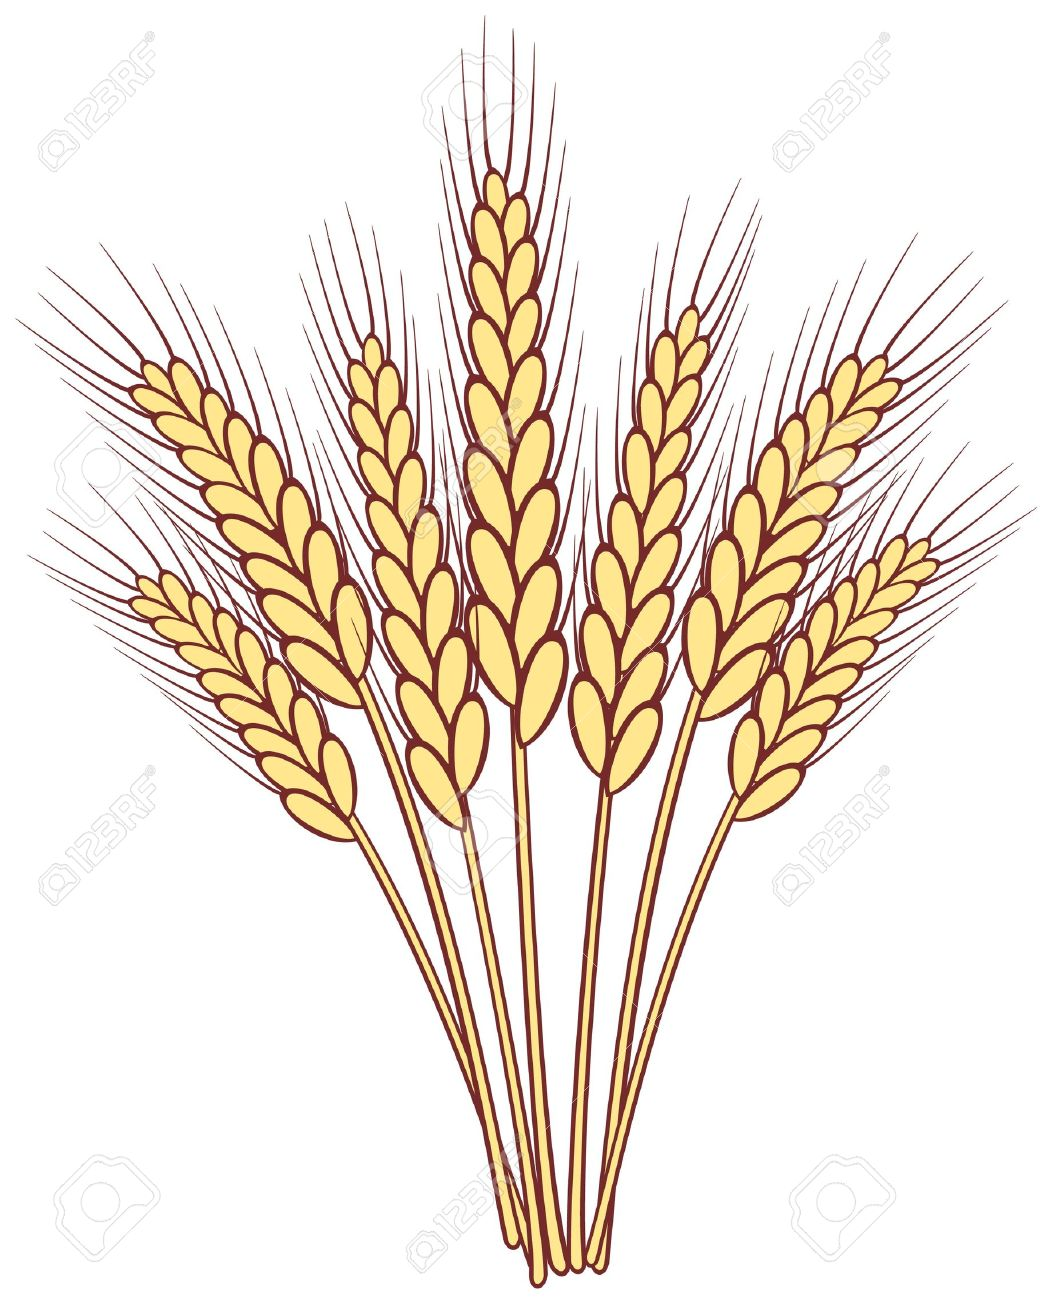 Wheat clipart #20, Download drawings